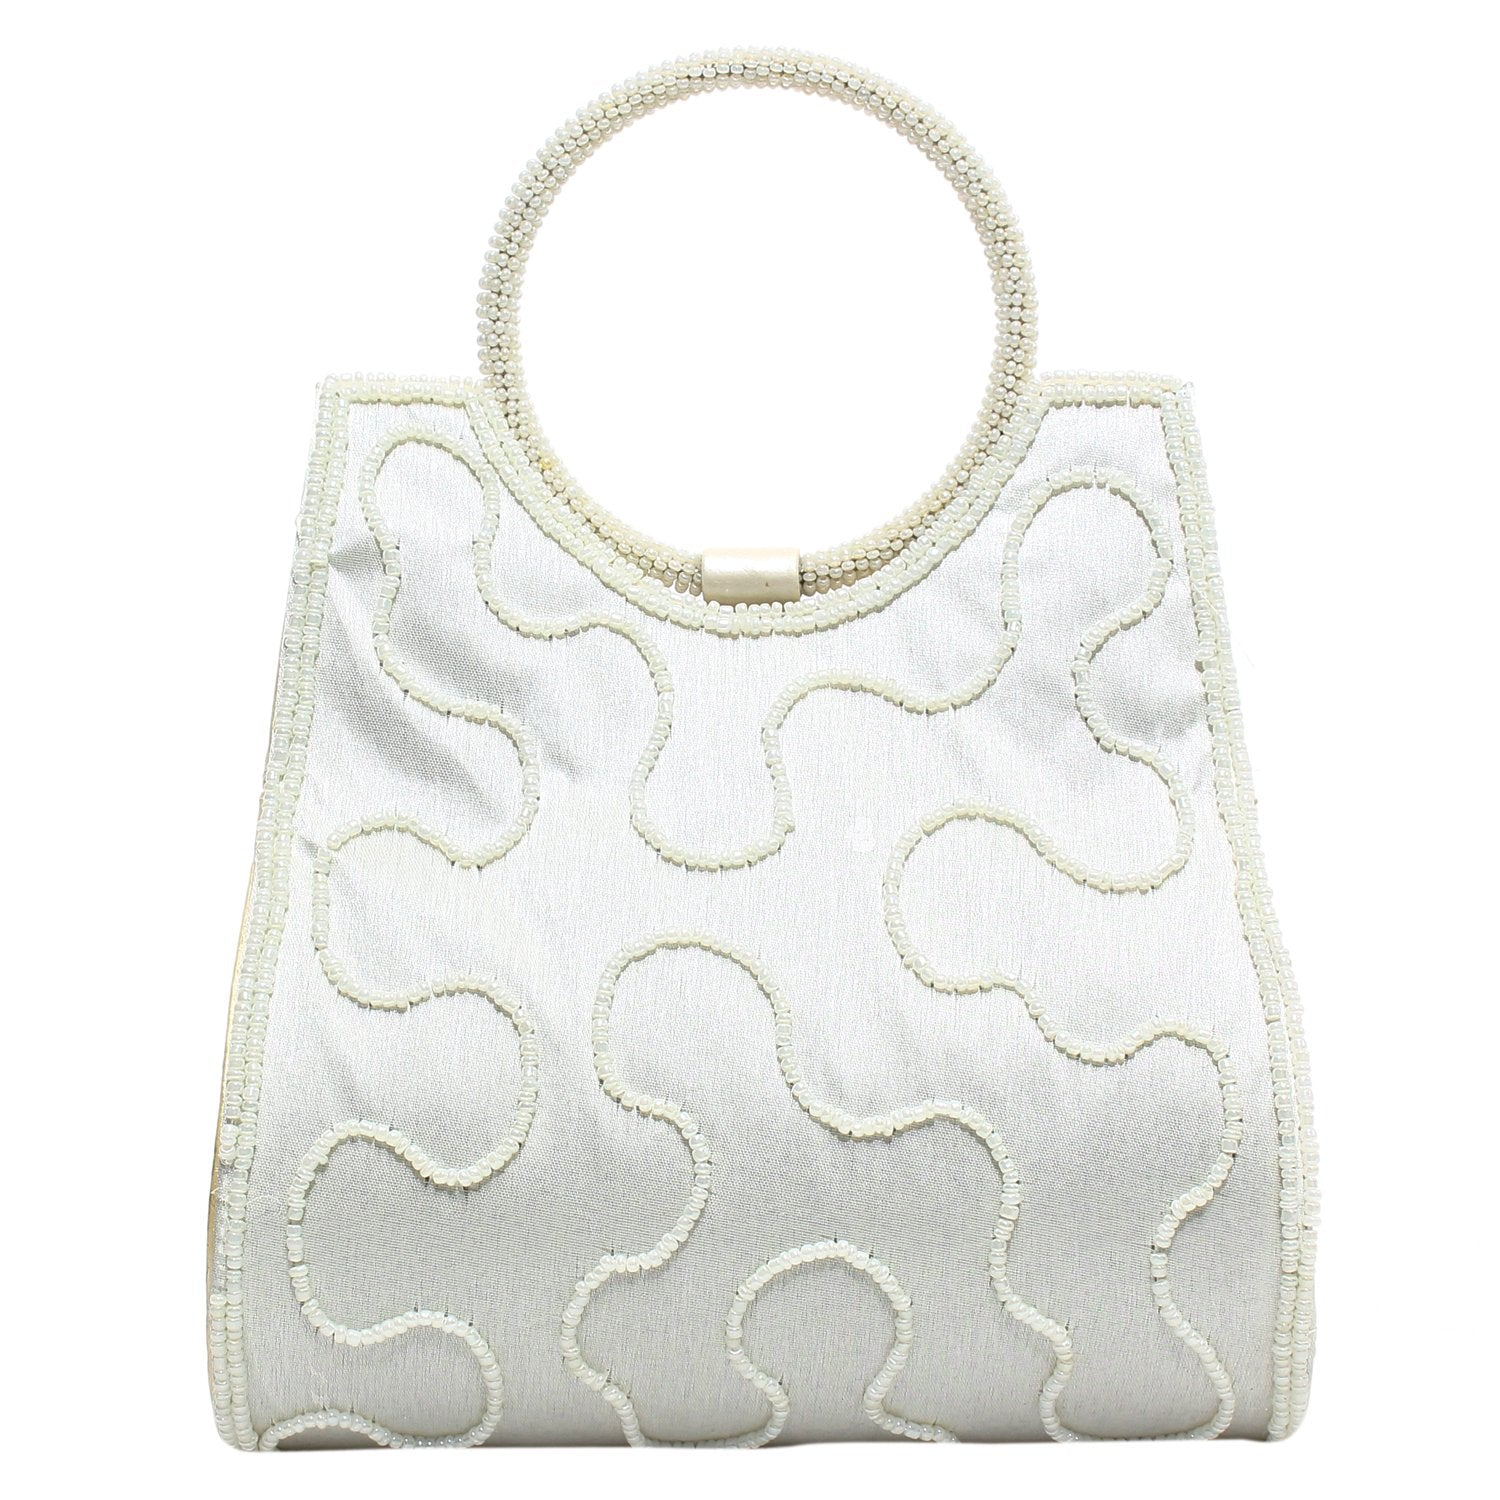 Ethnic Beads & Pearl Clutch (White) - Bagaholics Gift